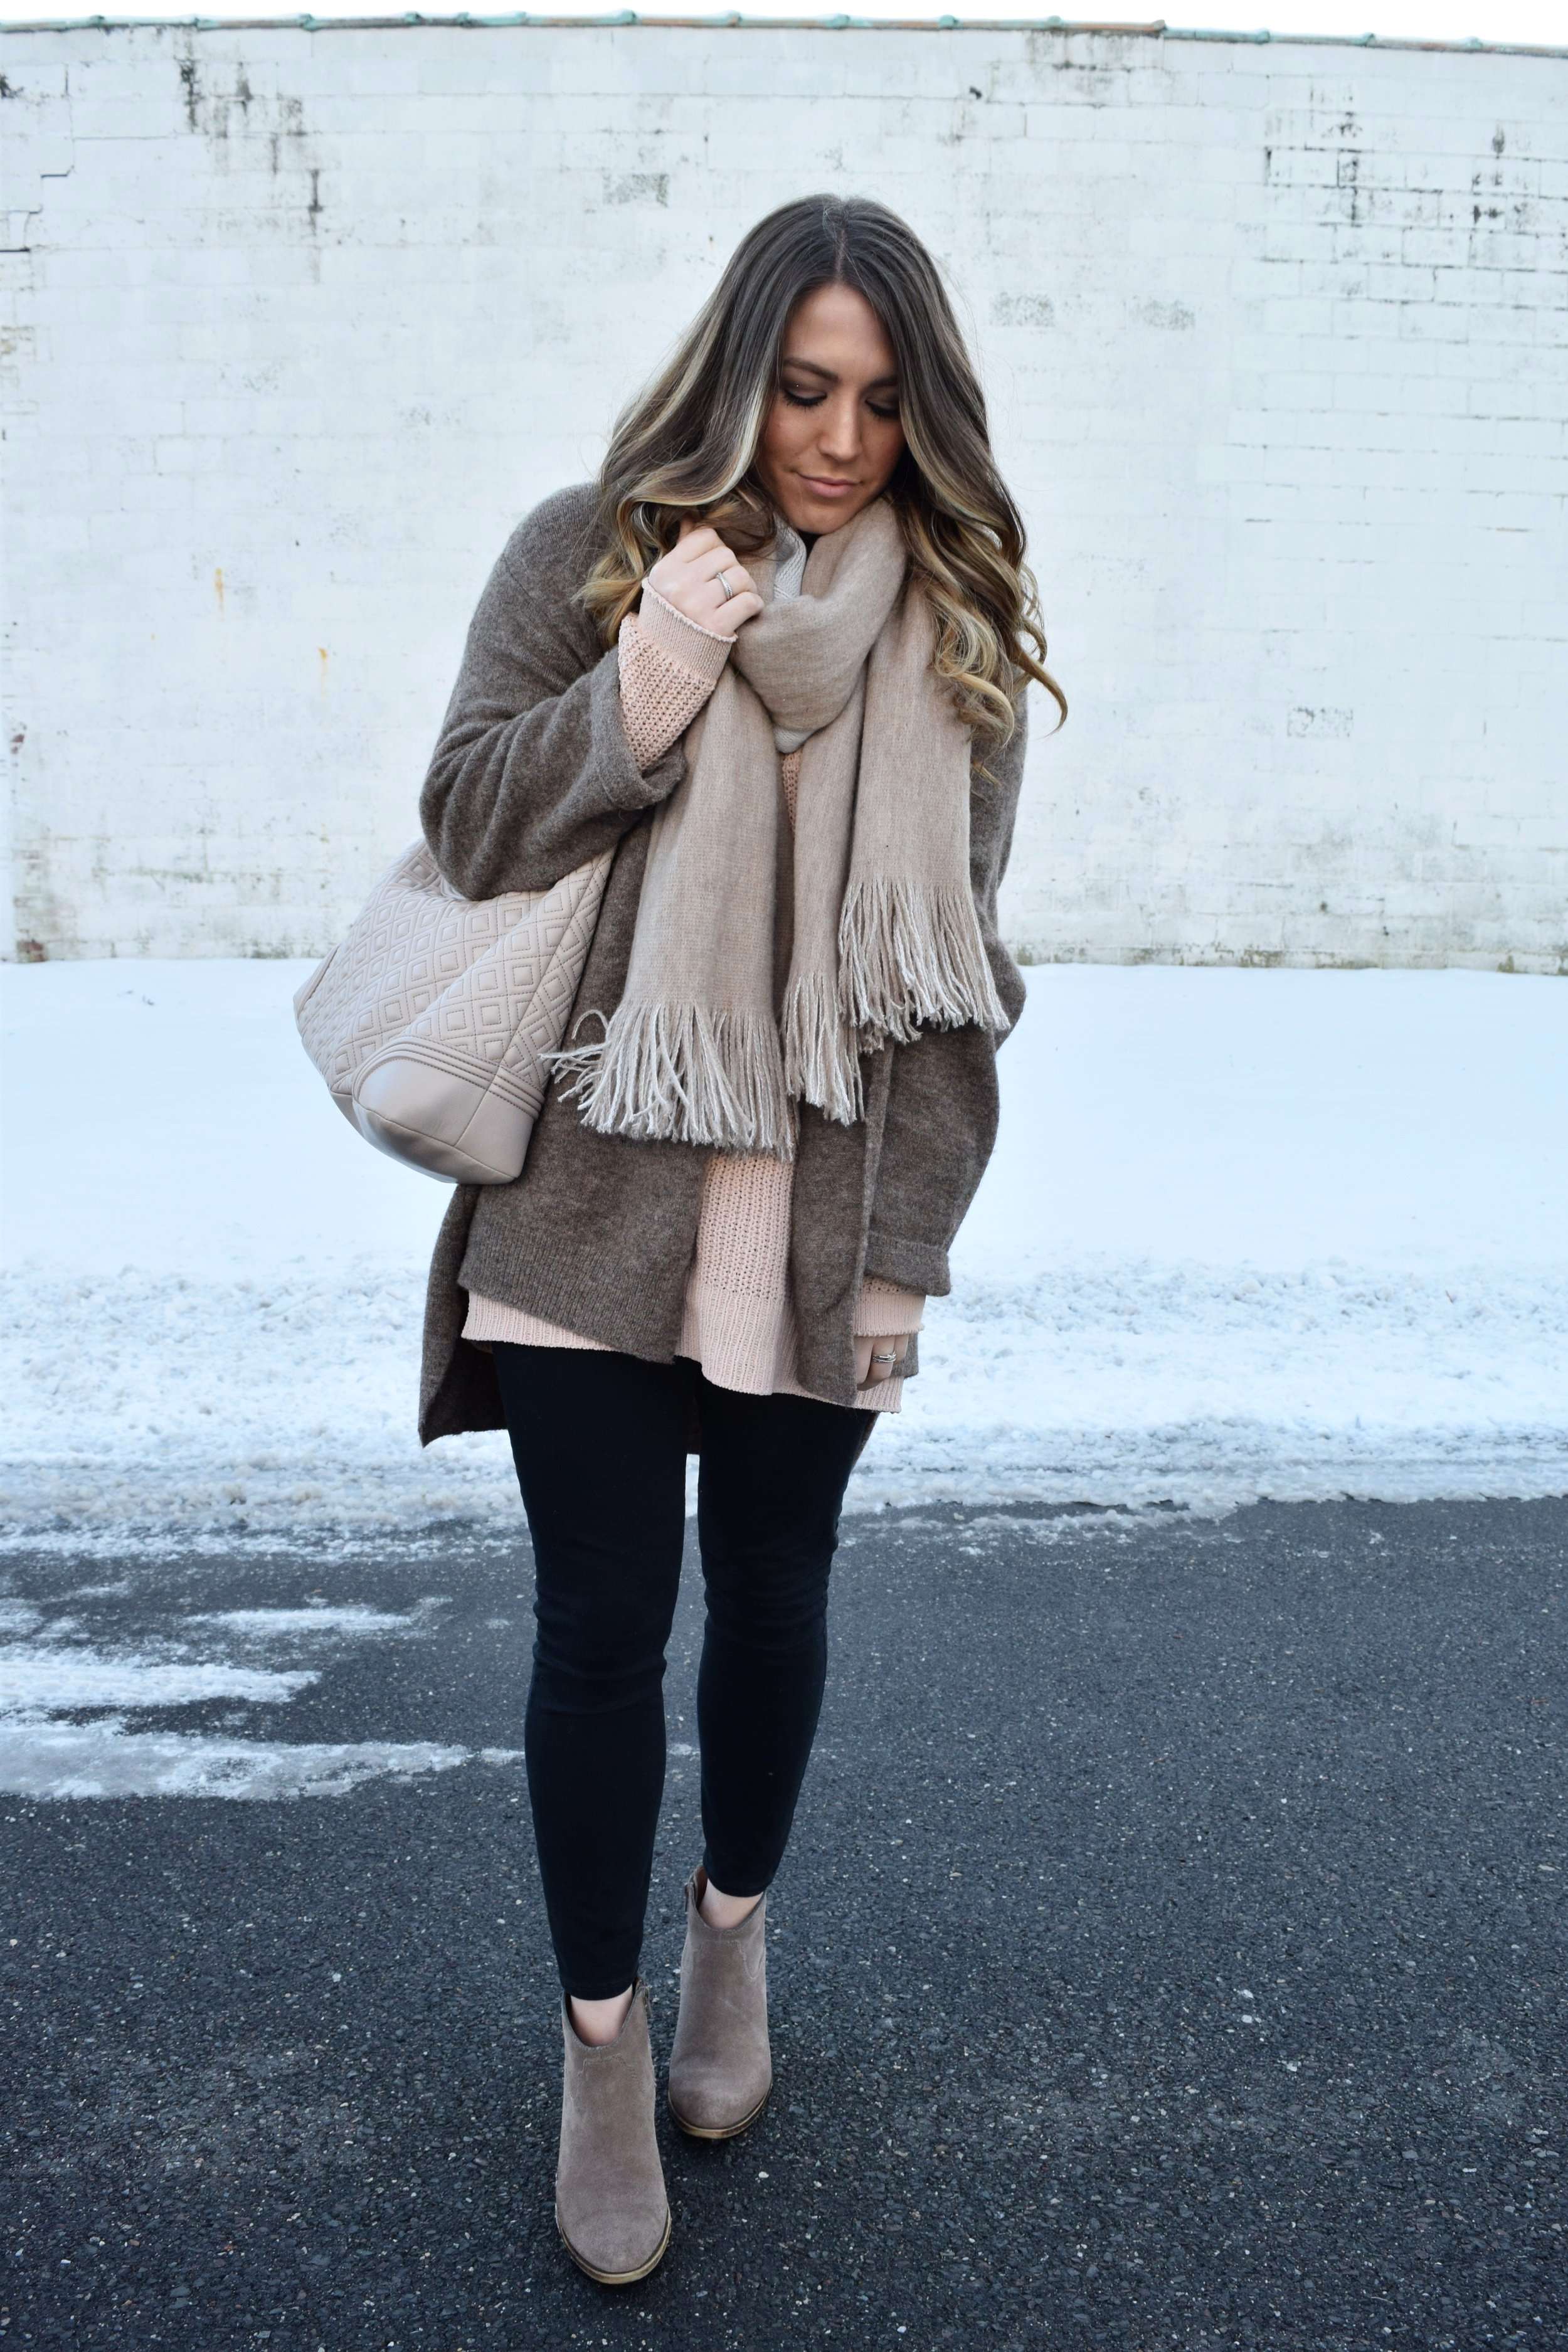 winter fashion, outfit idea, cozy sweater layered with cardigan and blanket scarf